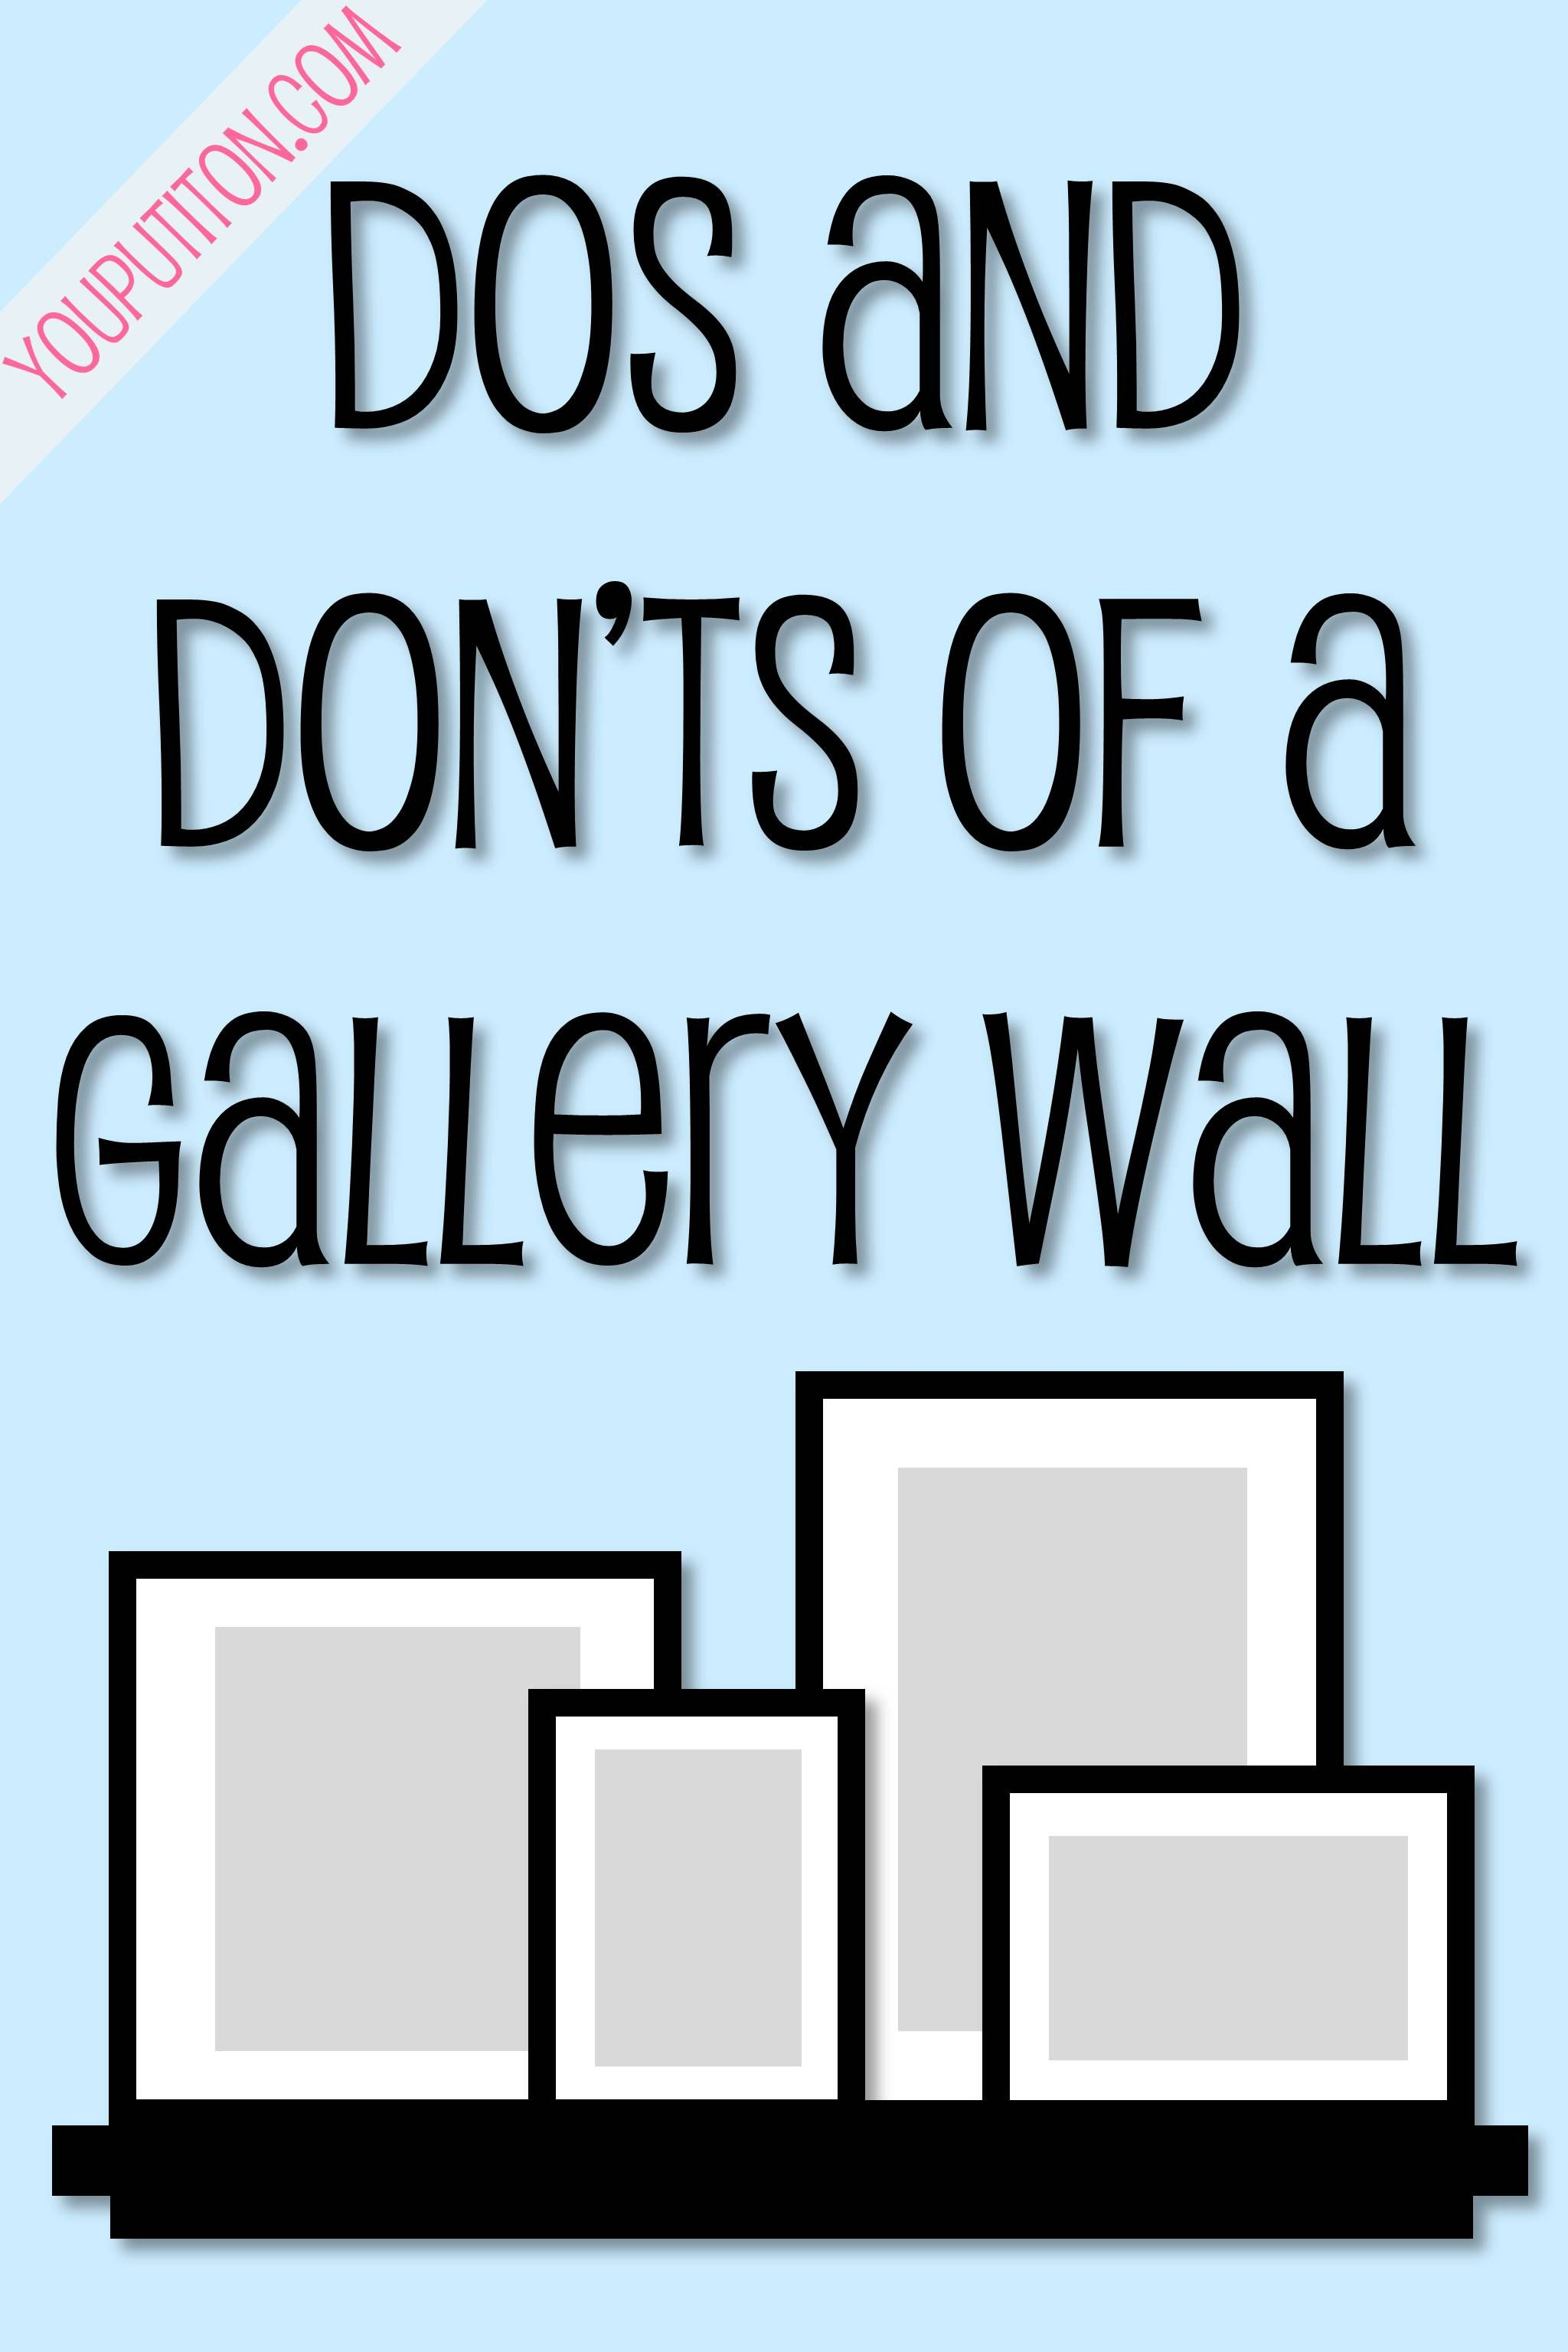 Dos and don 39 ts of a gallery wall best of pinterest Accent wall do s and don ts